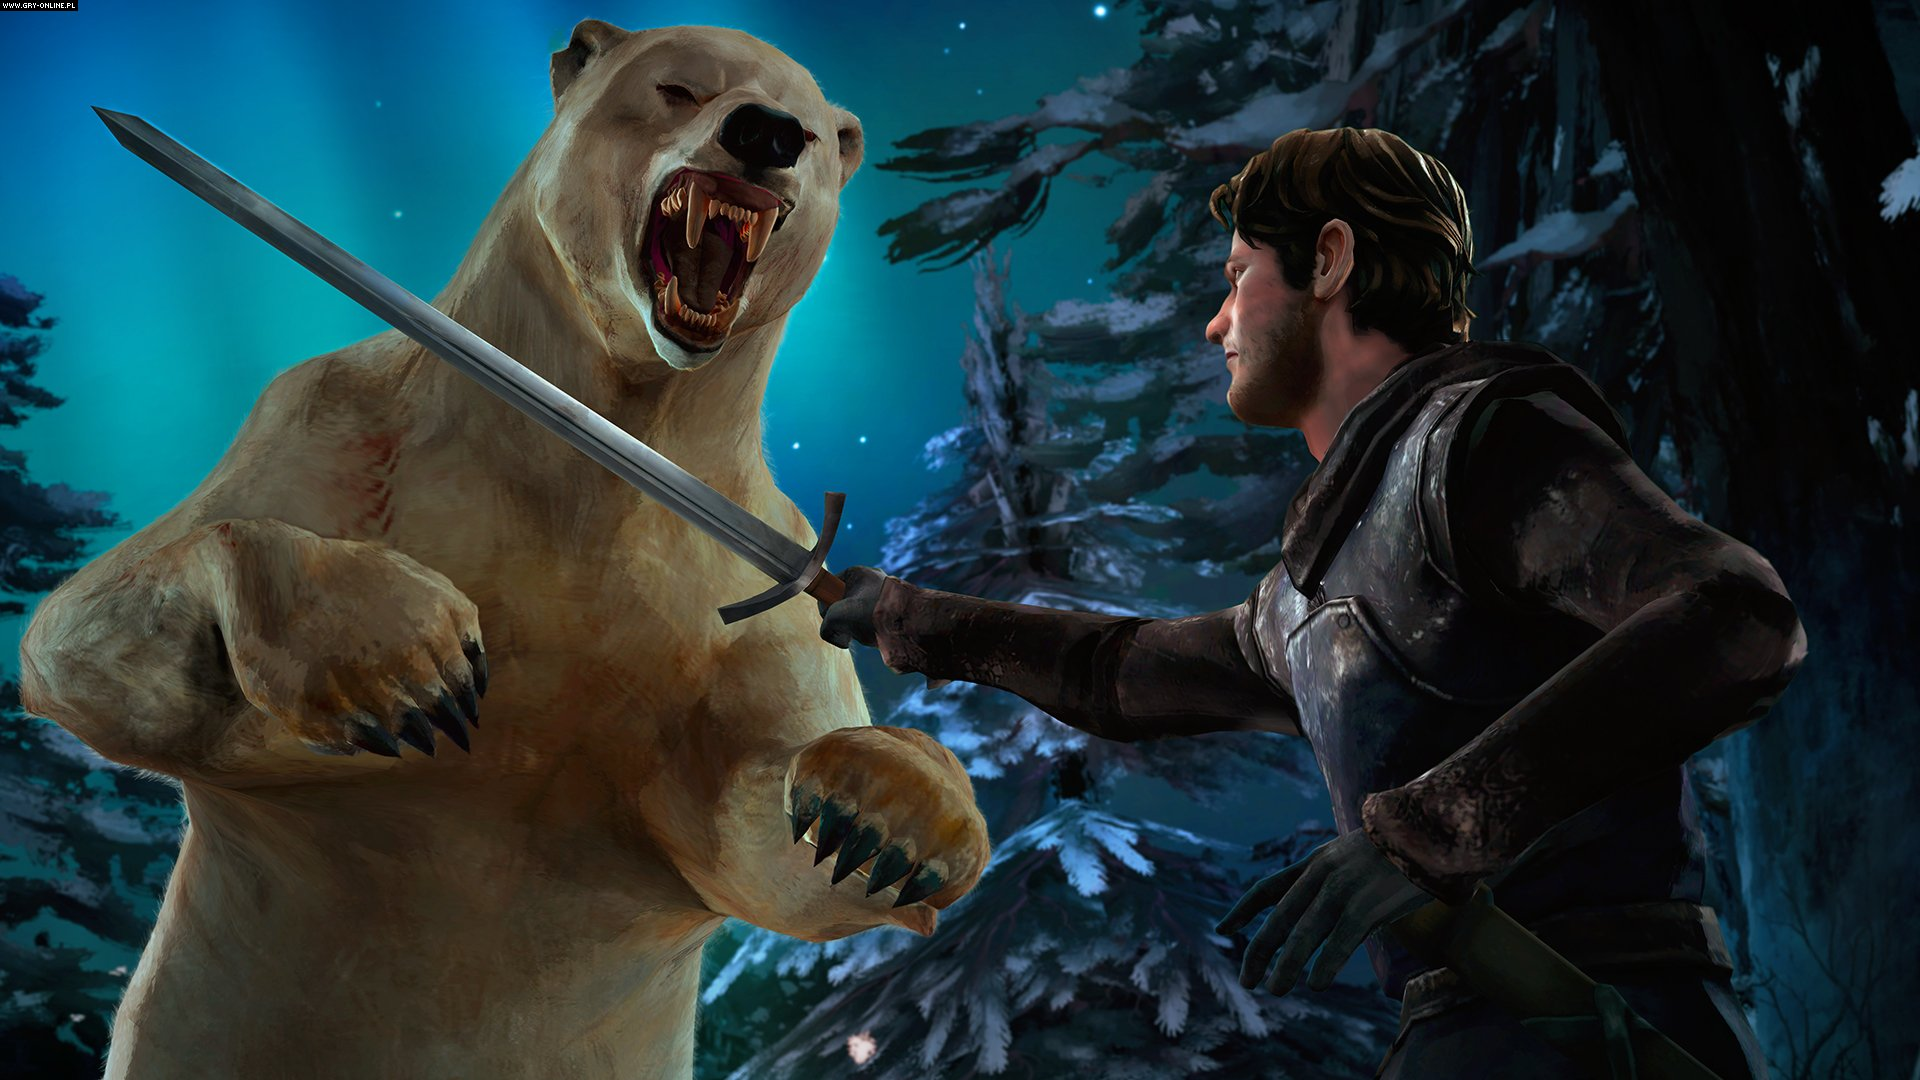 Game of Thrones: A Telltale Games Series - Season One PC, X360, PS3, PS4, XONE, AND, iOS Games Image 5/44, Telltale Games